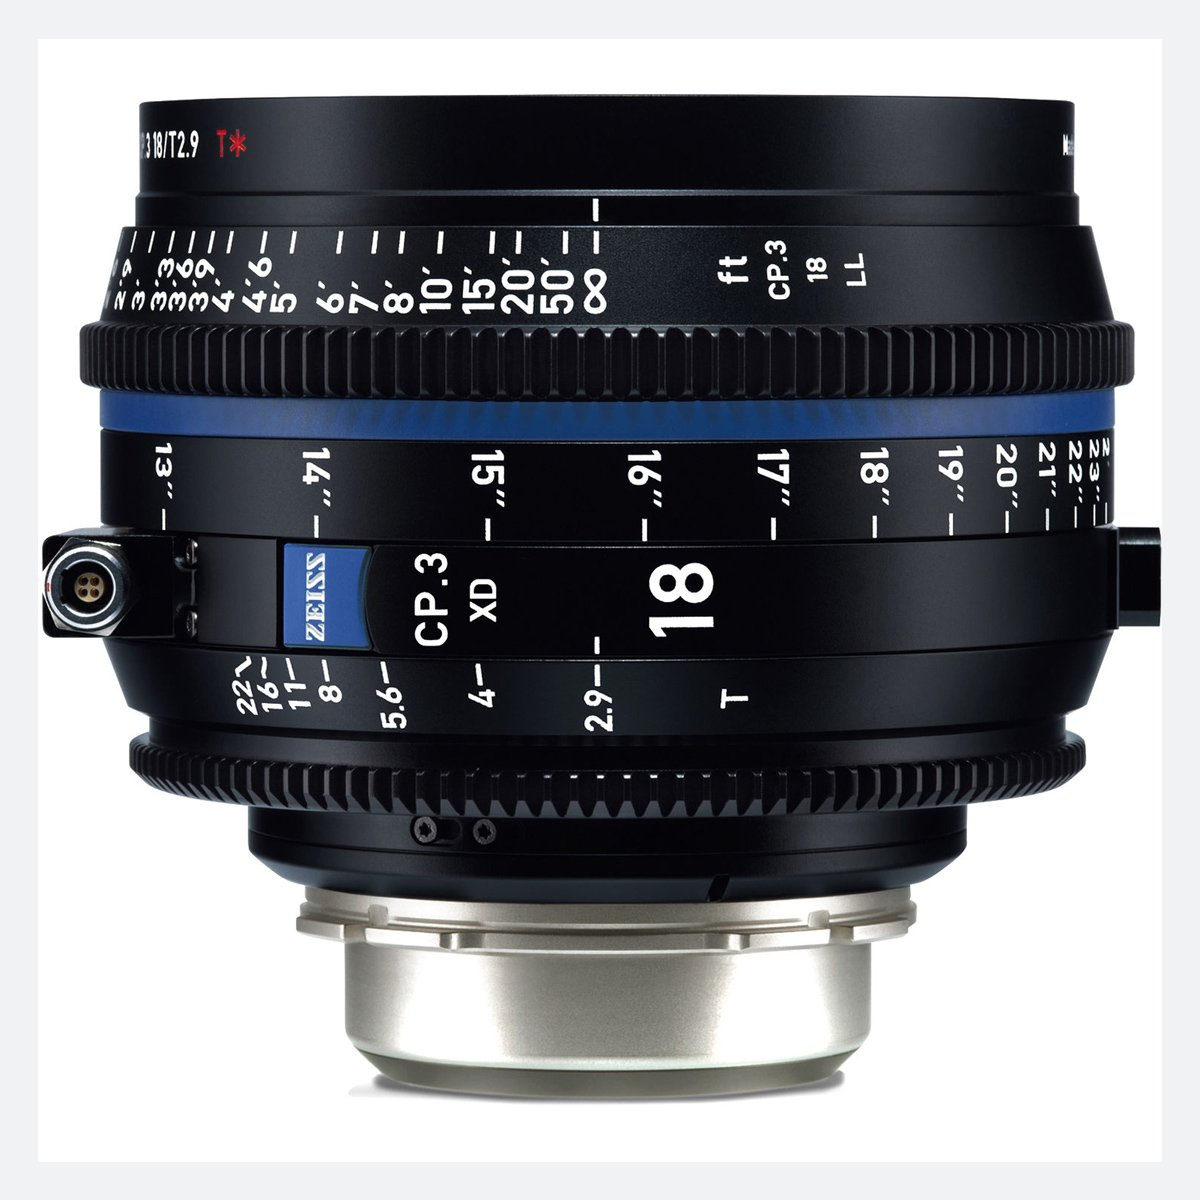 Zeiss CP.3 XD 18mm T/2.9 Compact Prime Cine Lens